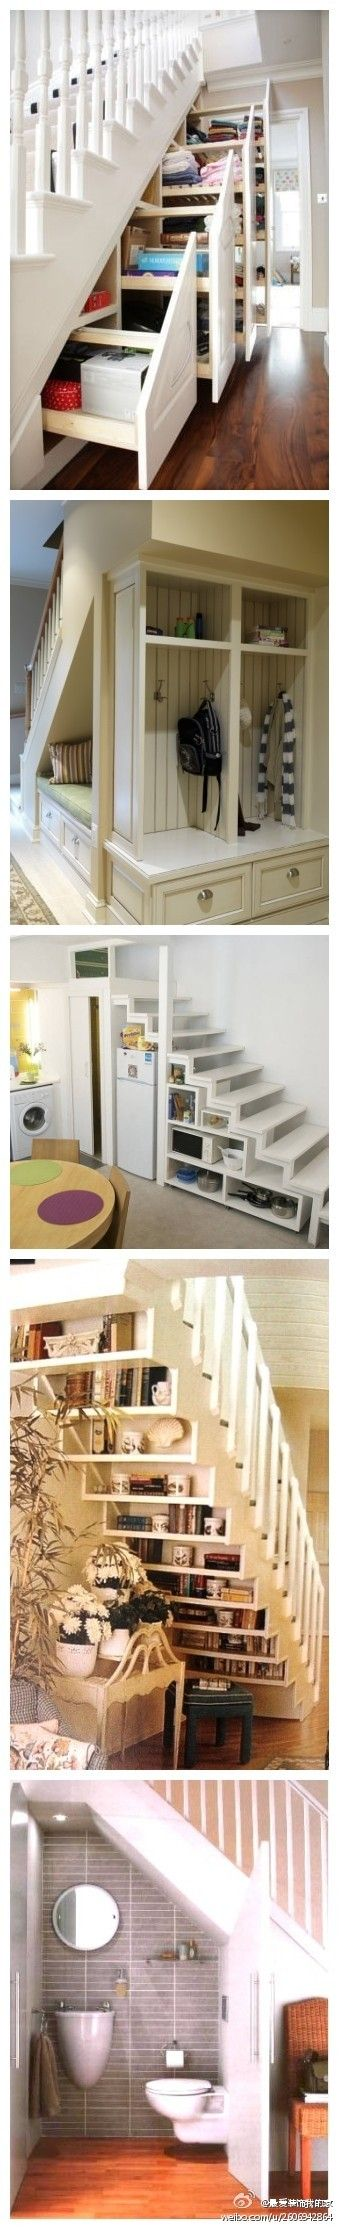 Cool ideas for under the stairs That